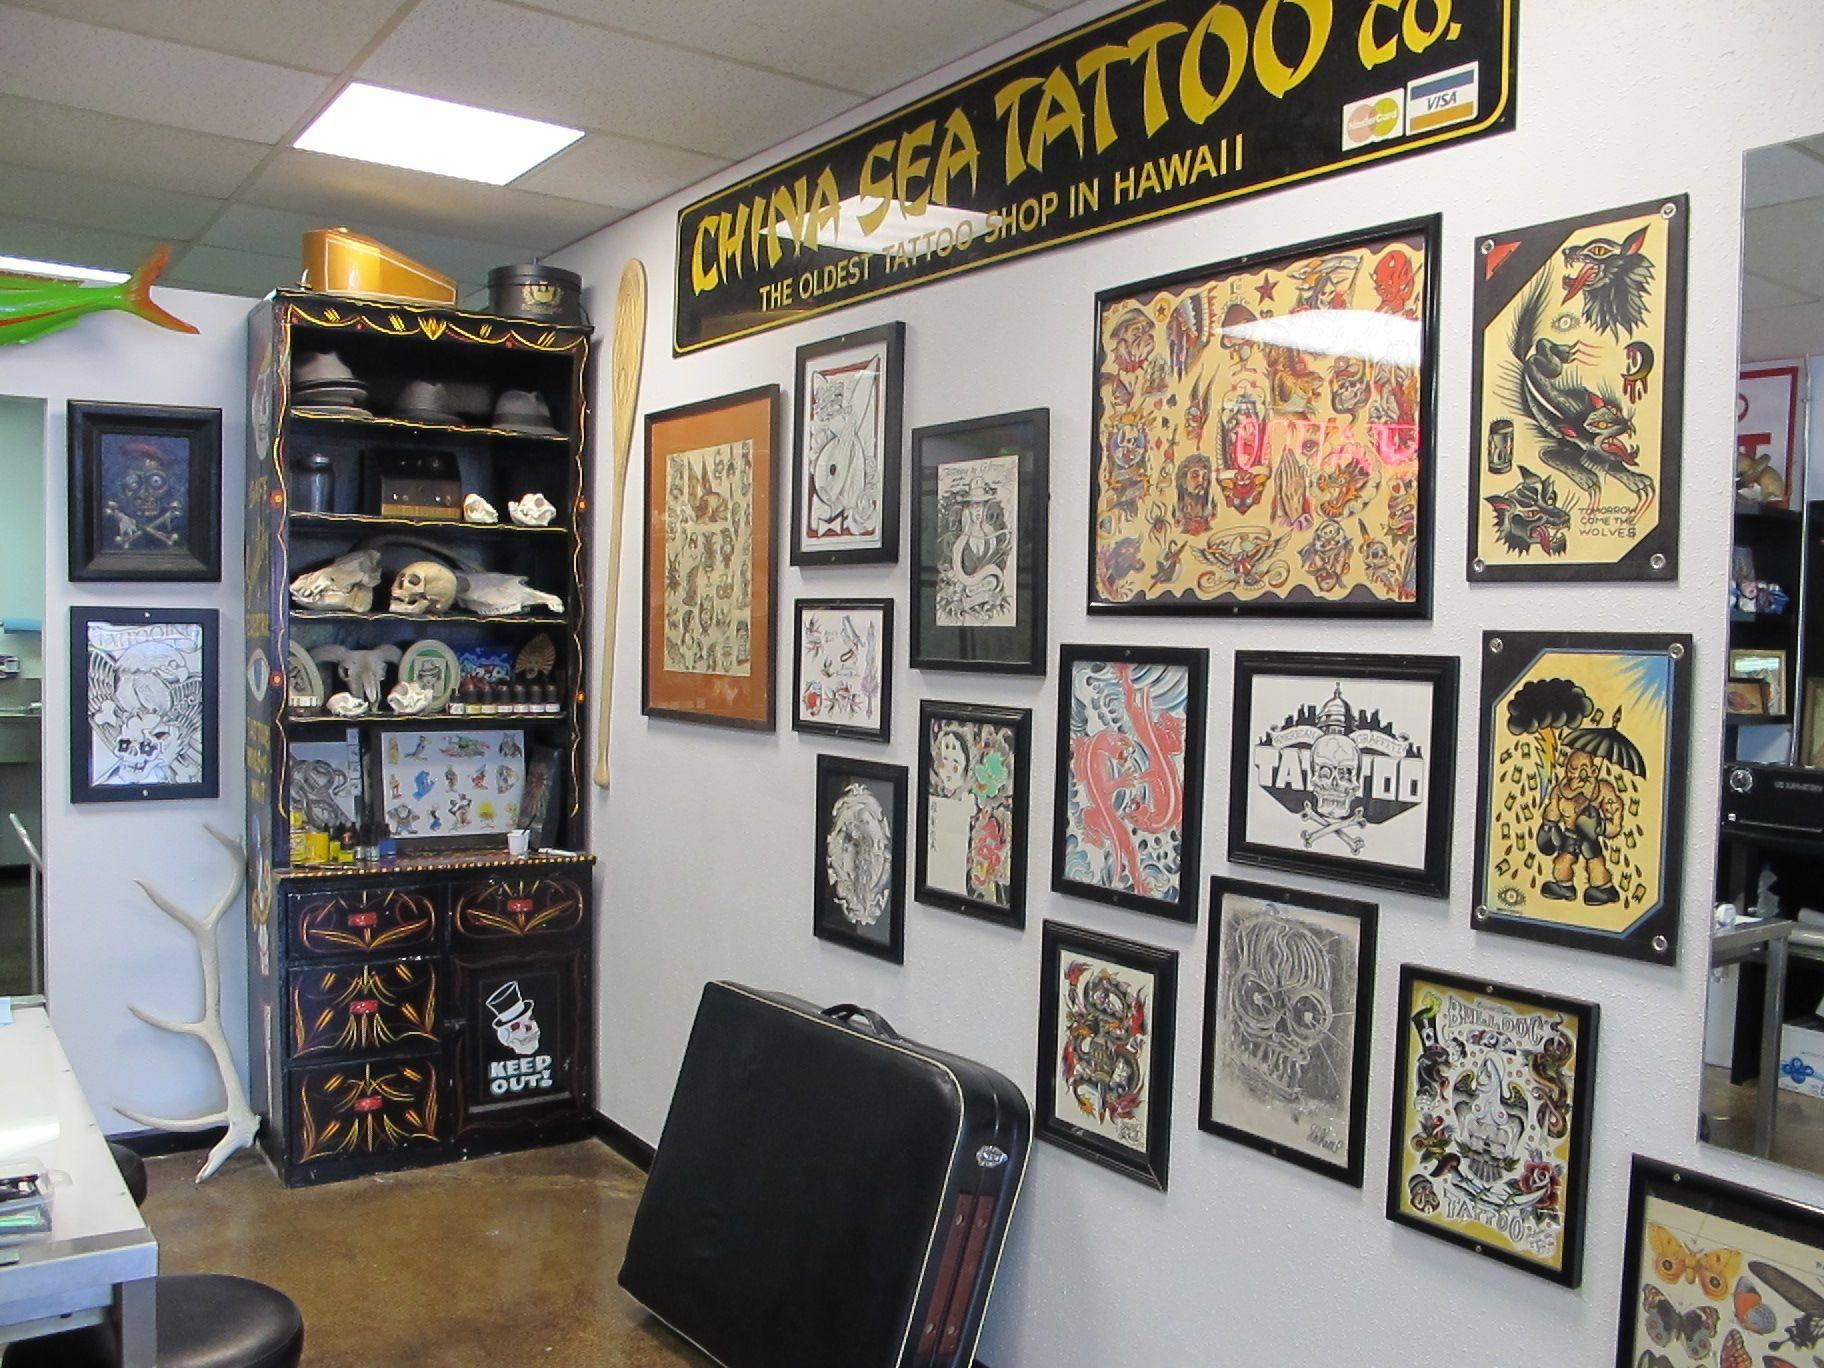 Wall Art Designs: Glamorous Tattoo Shop Wall Art From Professional Within Tattoos Wall Art (Image 18 of 20)